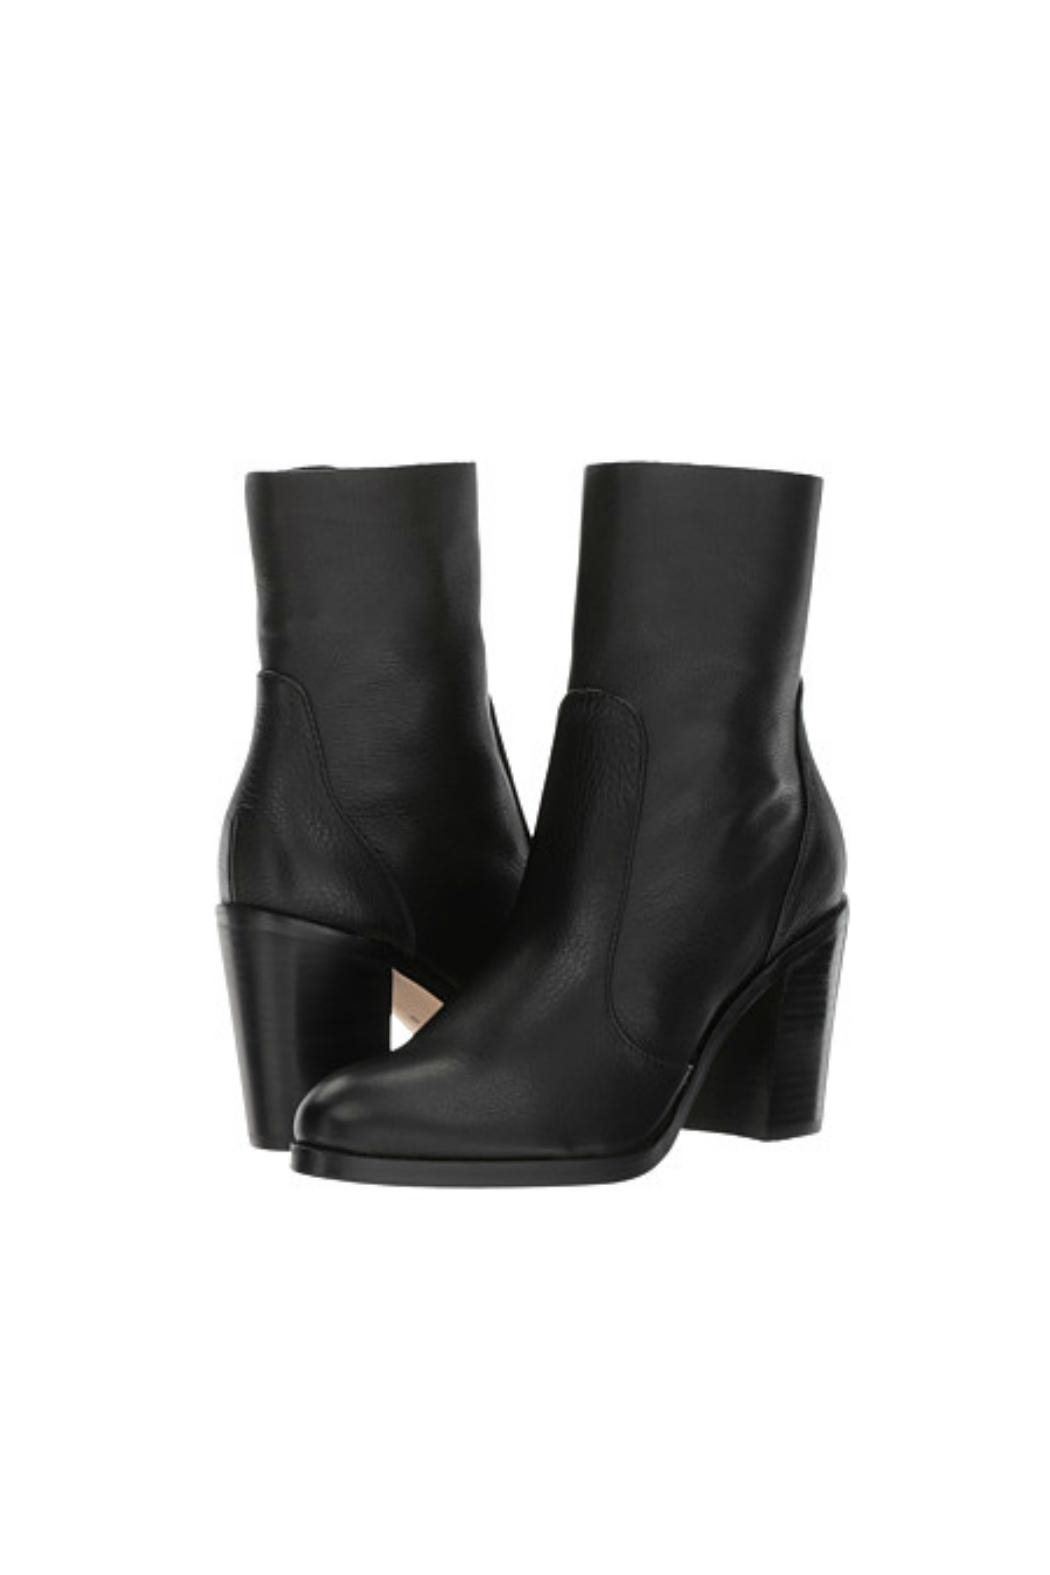 Splendid The Roselyn Boots - Front Full Image